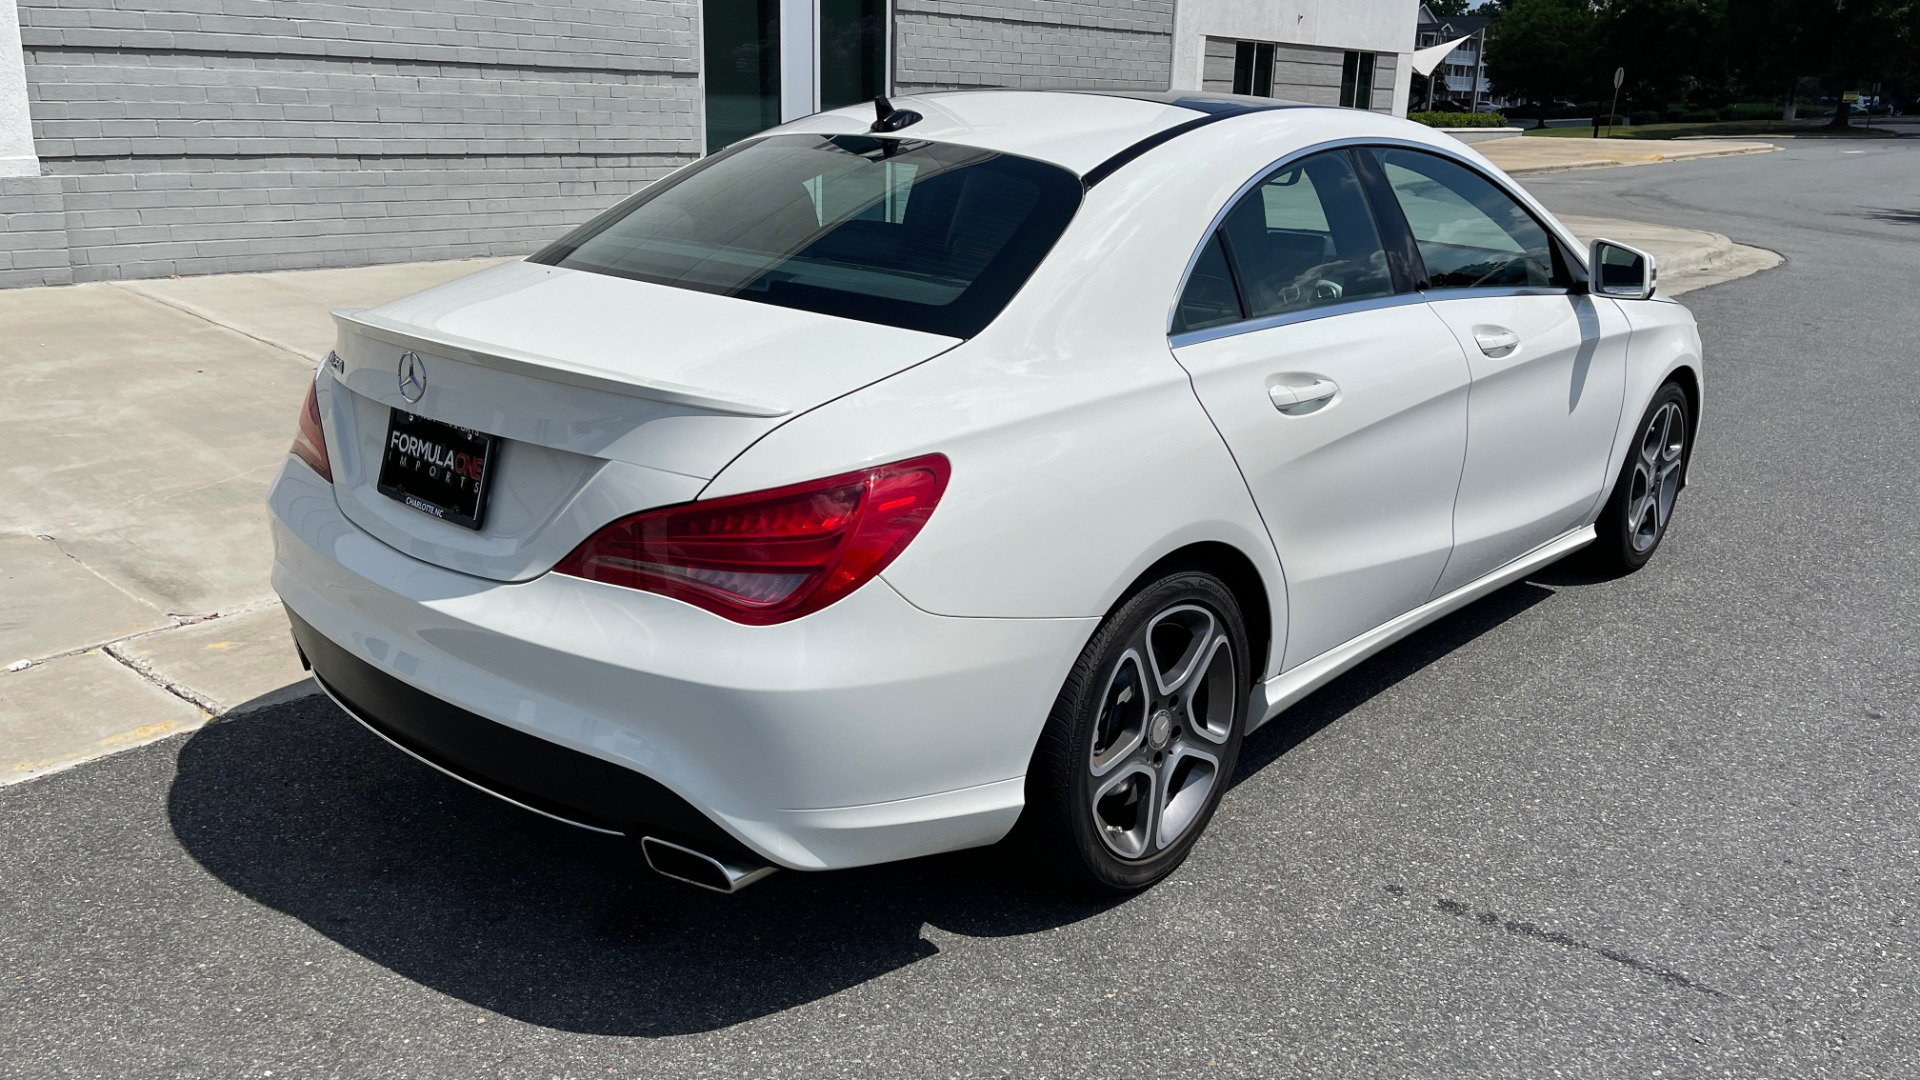 Used 2014 Mercedes-Benz CLA-Class 250 PREMIUM / NAV / MULTIMEDIA PKG / PANO-ROOF / REARVIEW for sale $19,495 at Formula Imports in Charlotte NC 28227 2